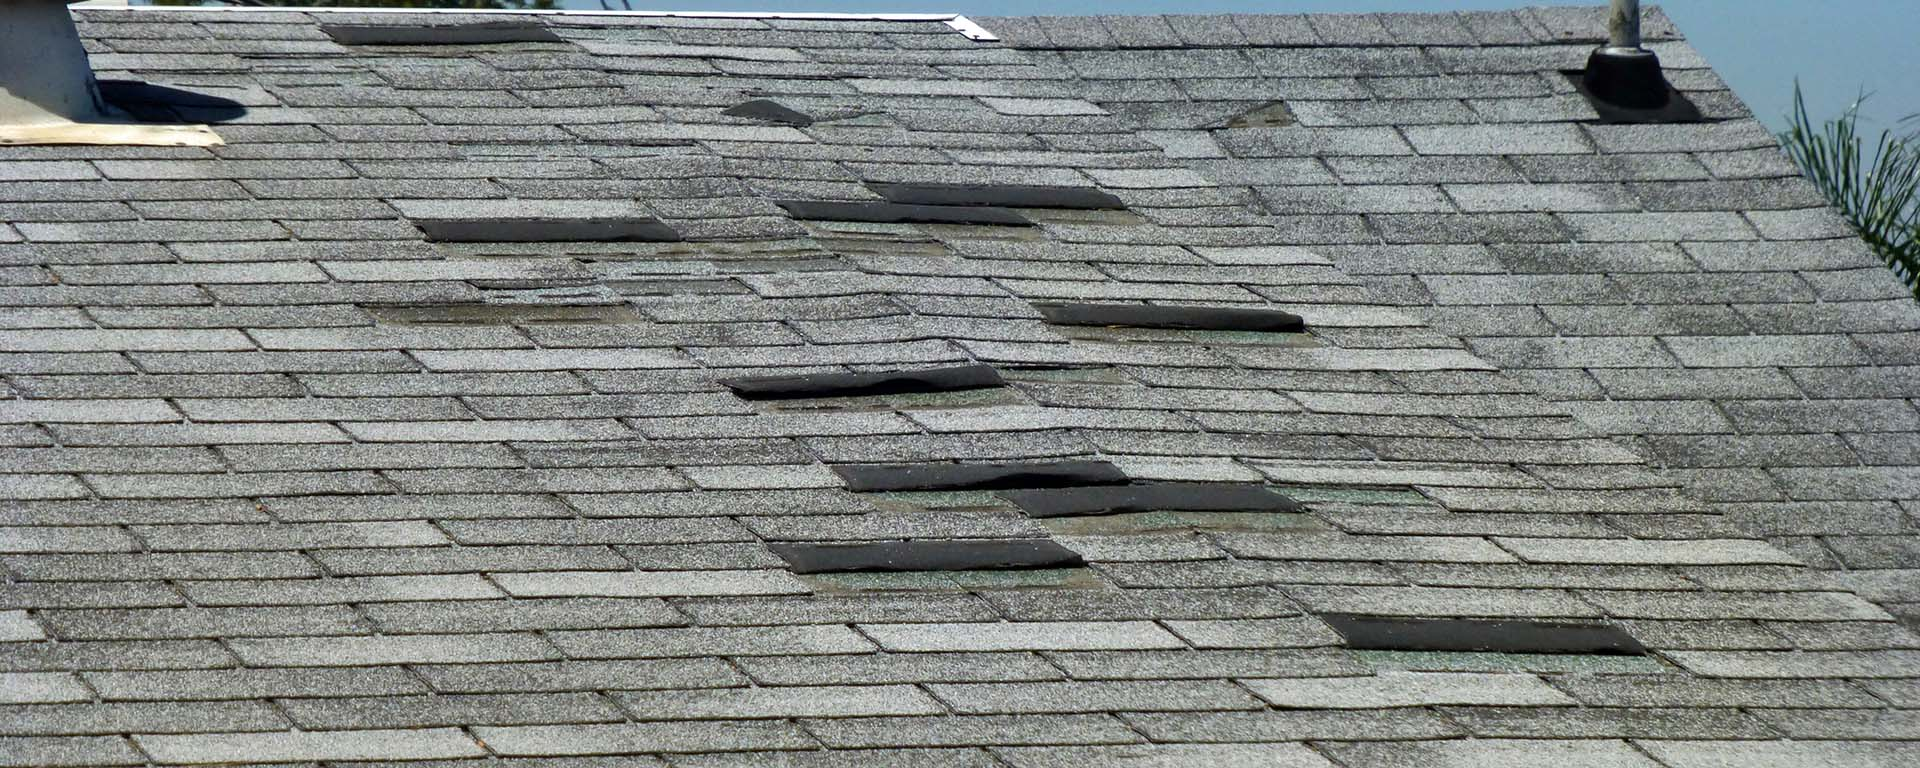 Roof Repair By Advanced Roofing Technologies Mundelein Il